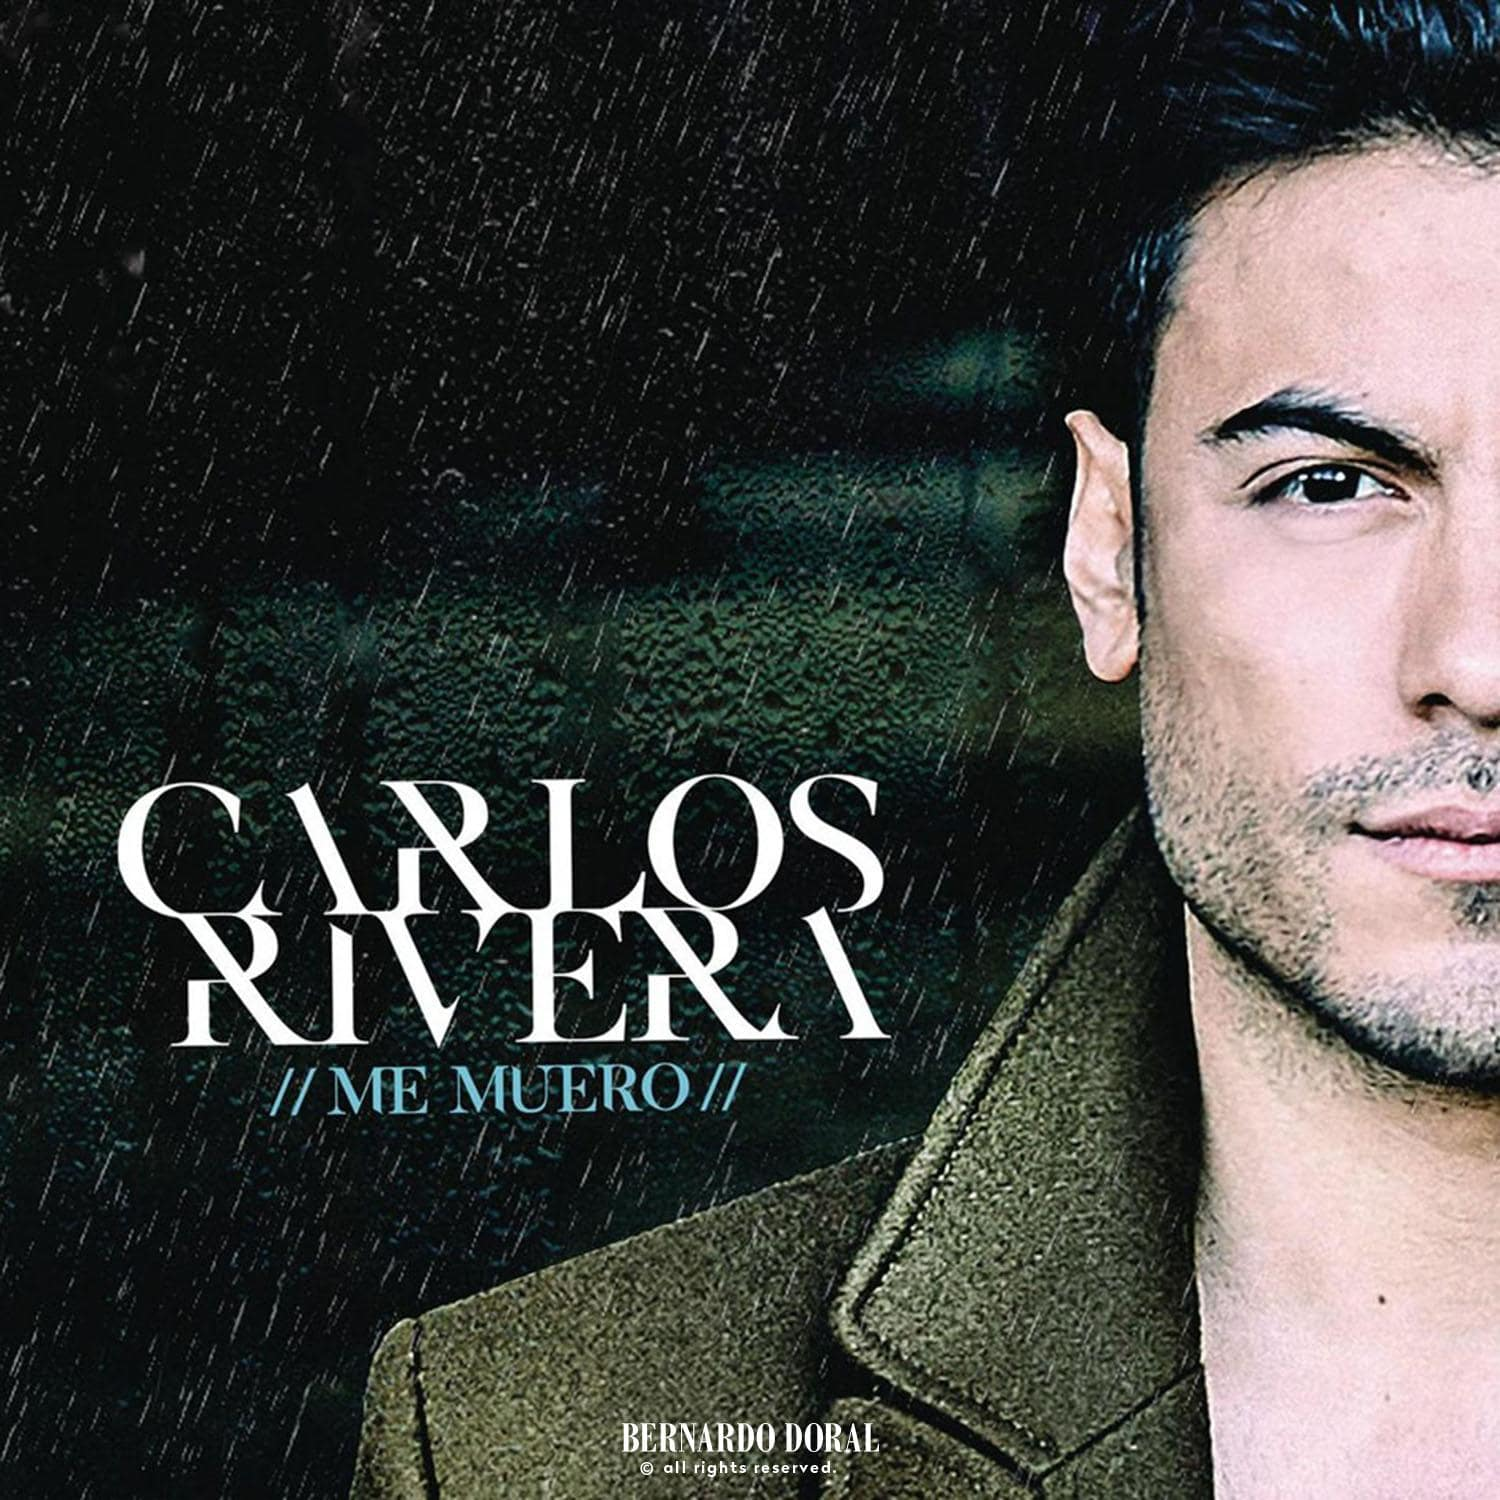 Carlos_Rivera-Me_Muero_CD_Single-Frontal-min